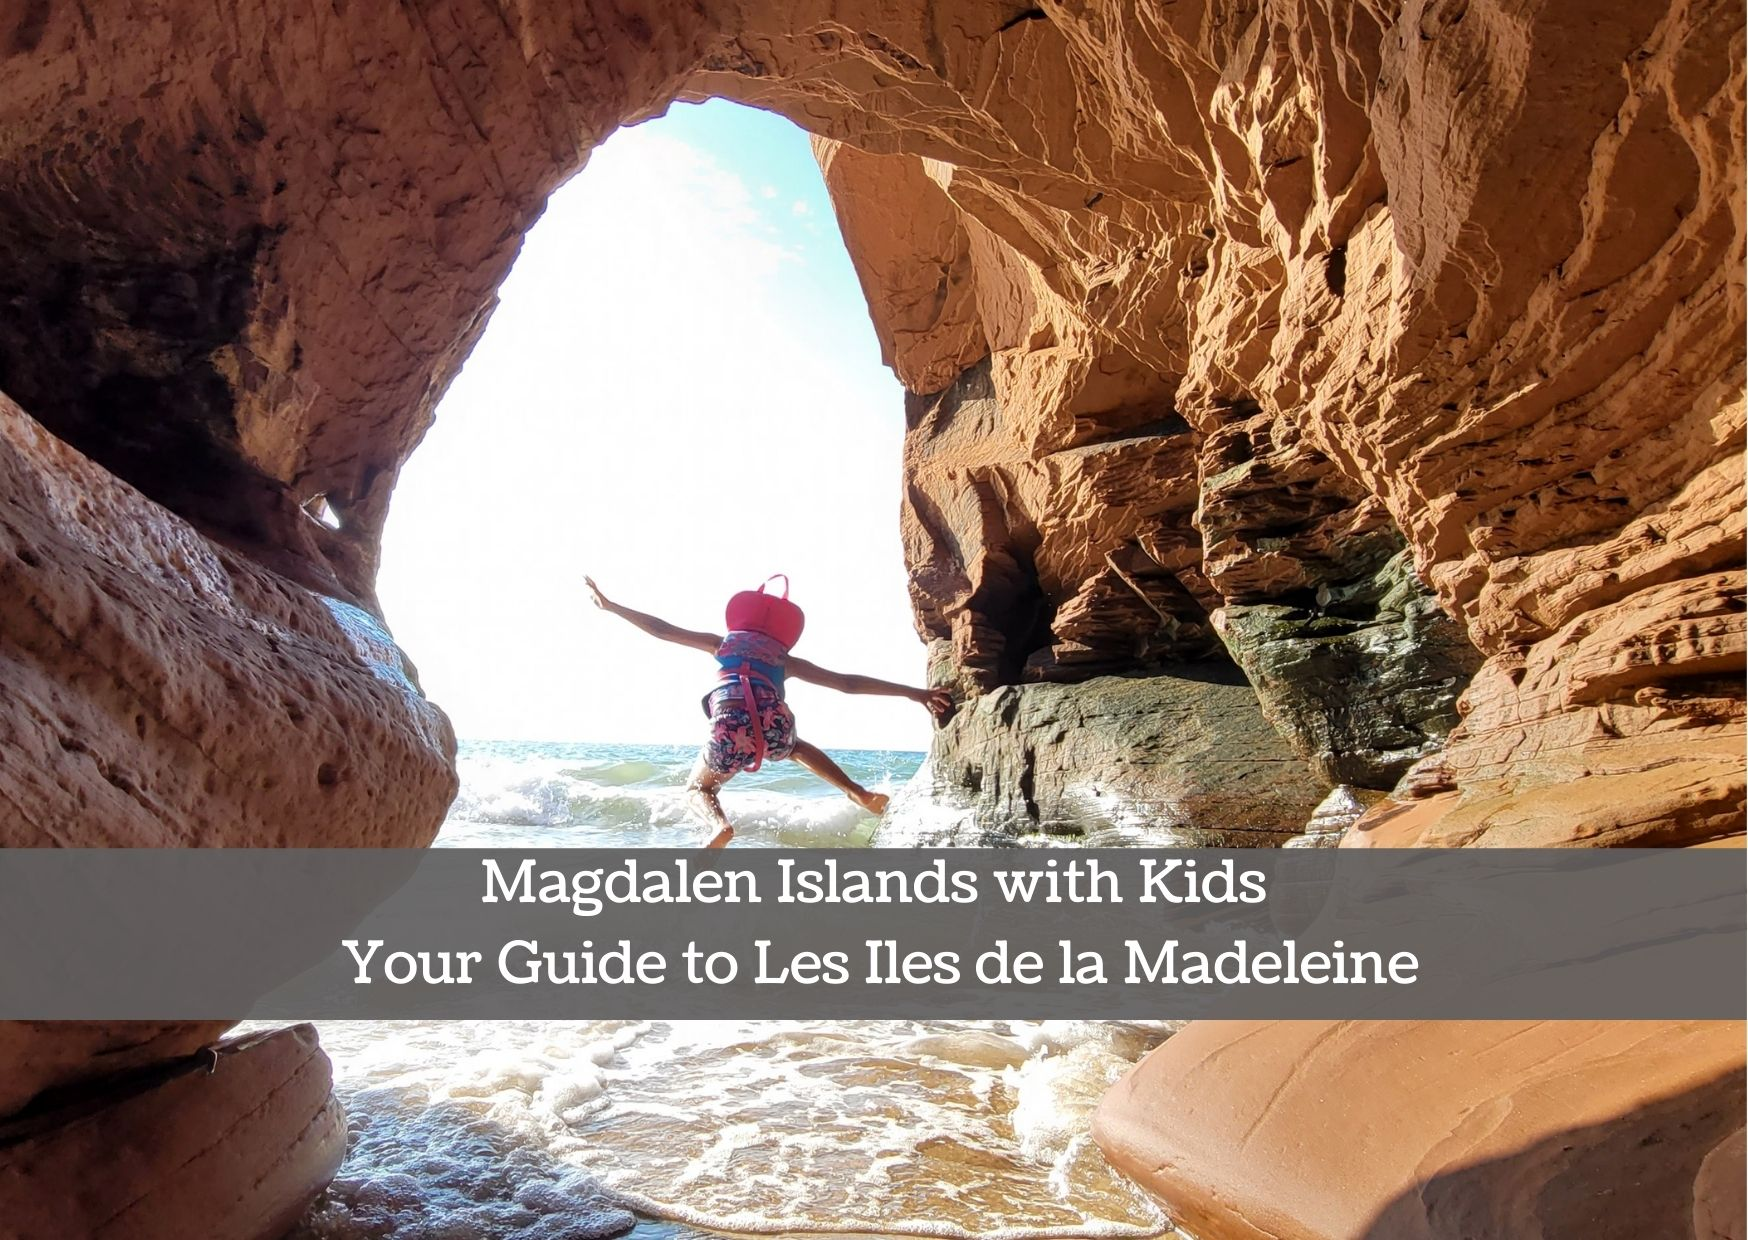 kid jumping in water and caves at Magdalen Islands Les Iles de la Madeleine